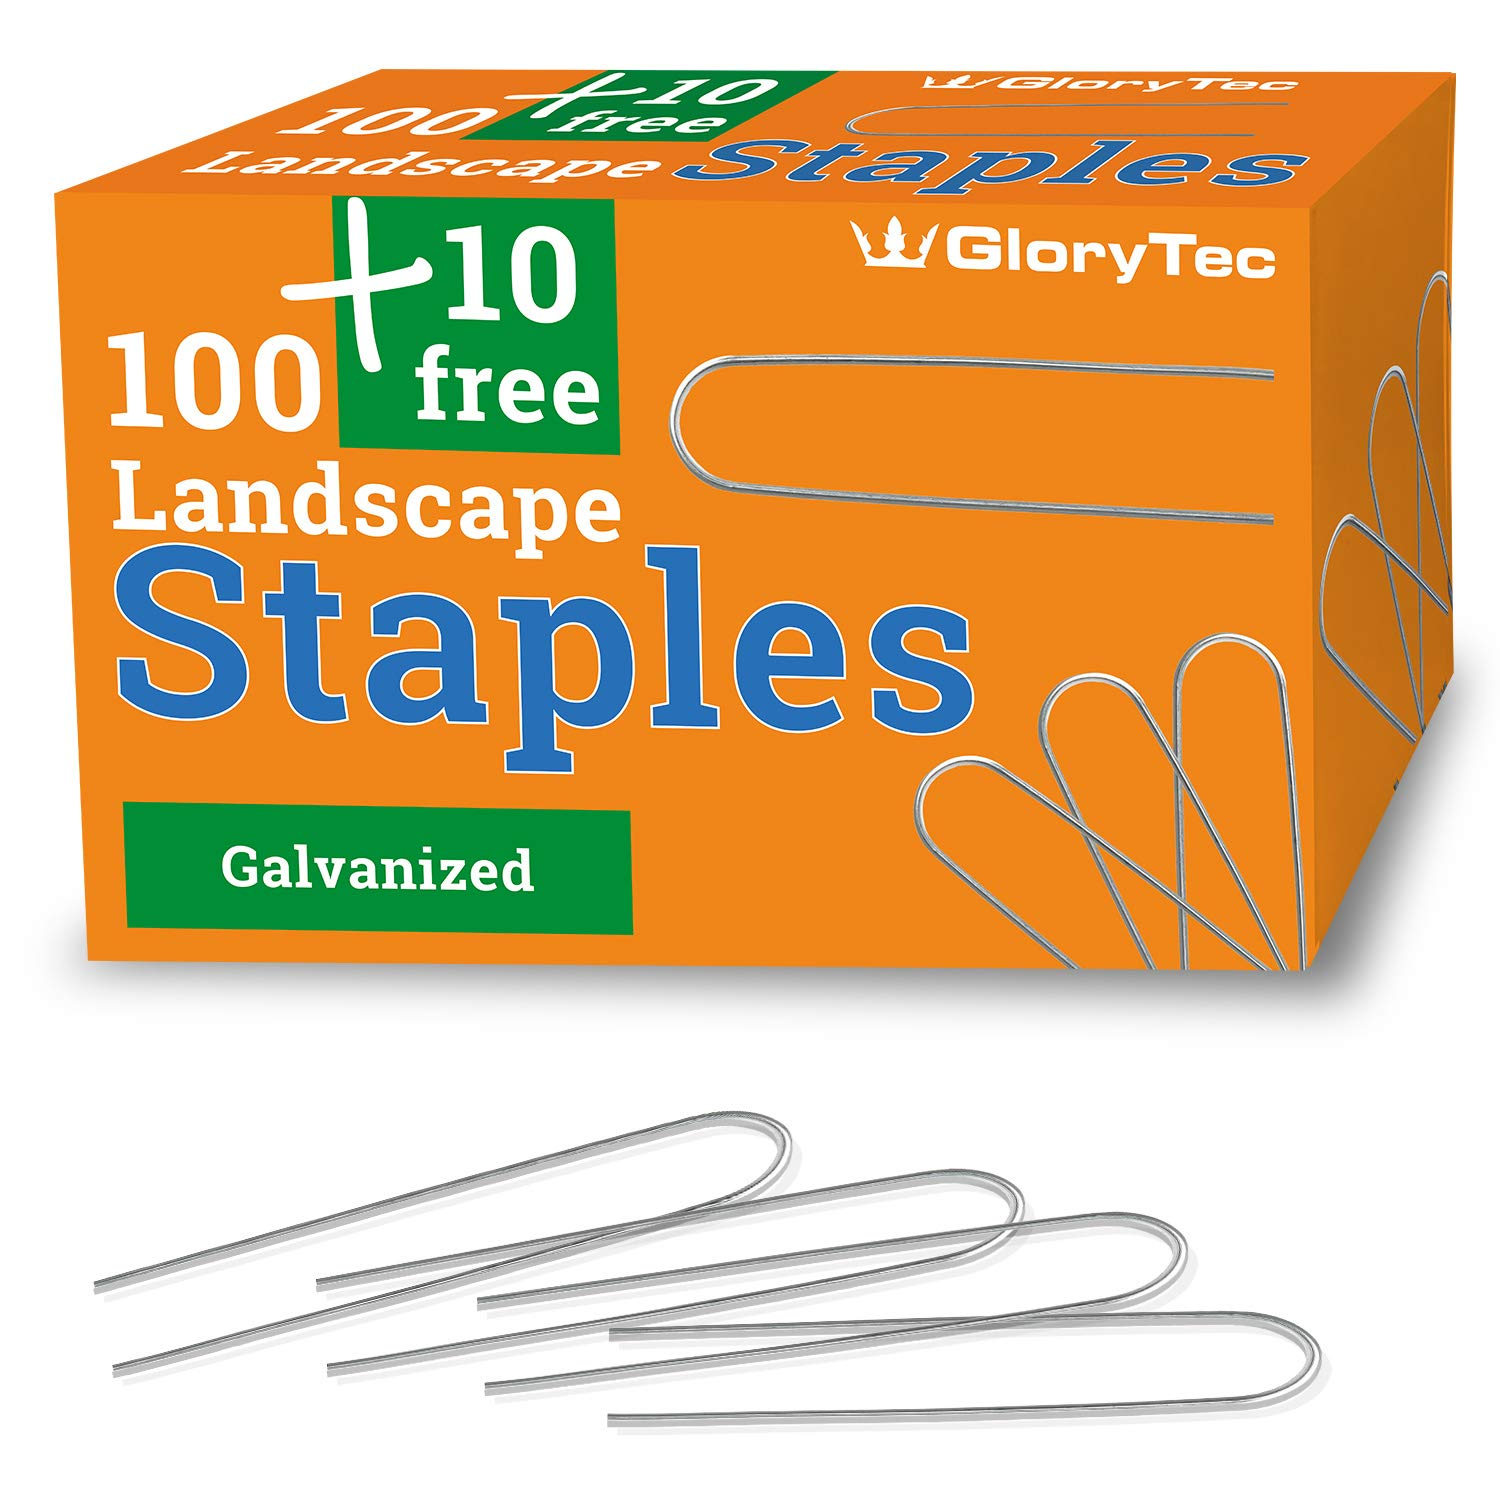 Glorytec 110 Garden Stakes Landscape Staples – Fabric Pins for Landscaping, Gardening, Sod Weed Barrier – Ground Turf Nails, Anchor 6 INCH Galvanized Sturdy Rust Resistant Gardening Supplies